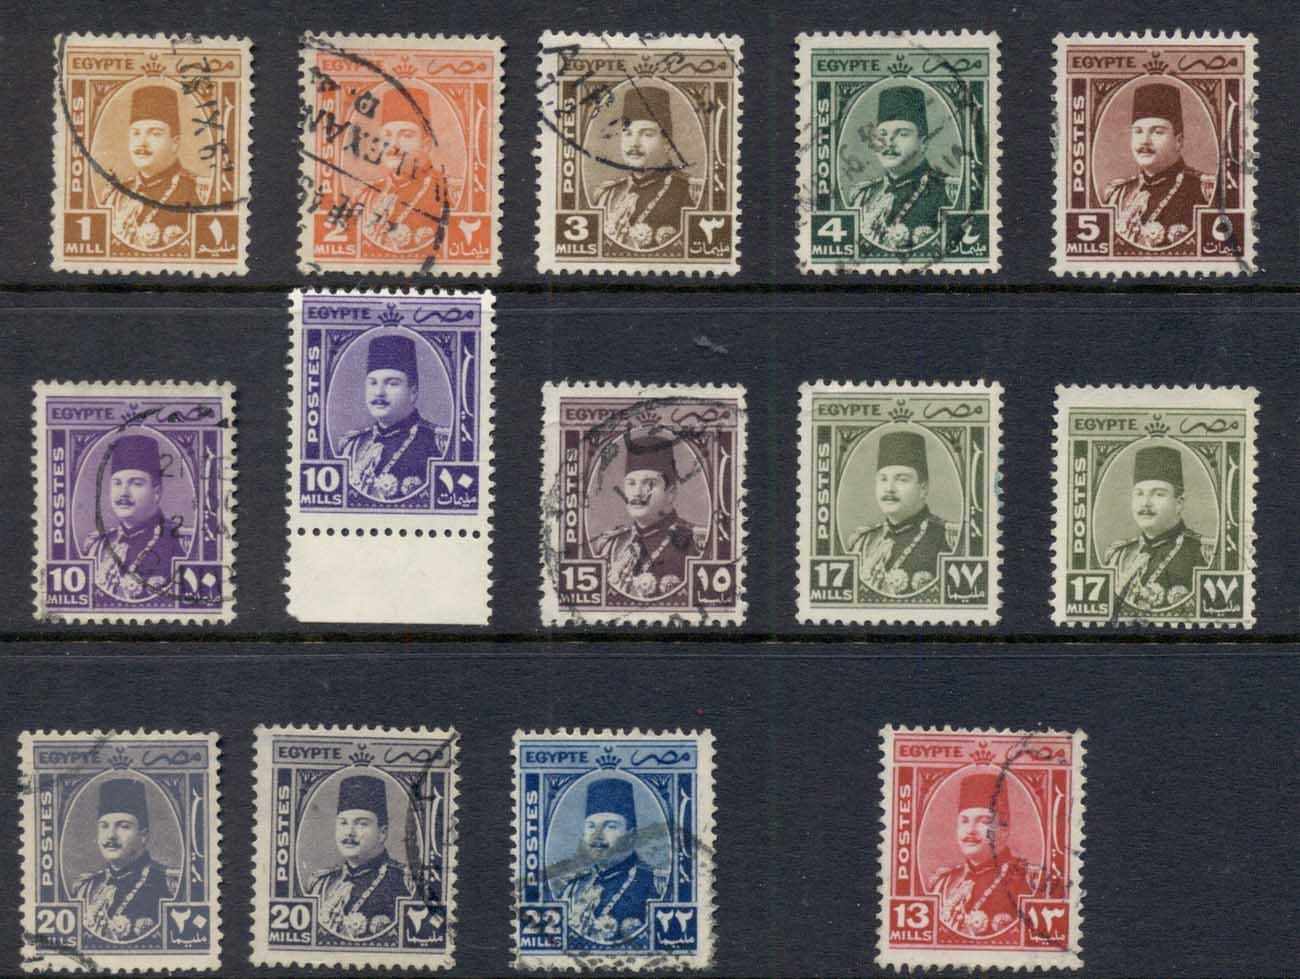 Egypt 1944-50 King Farouk Asst FU